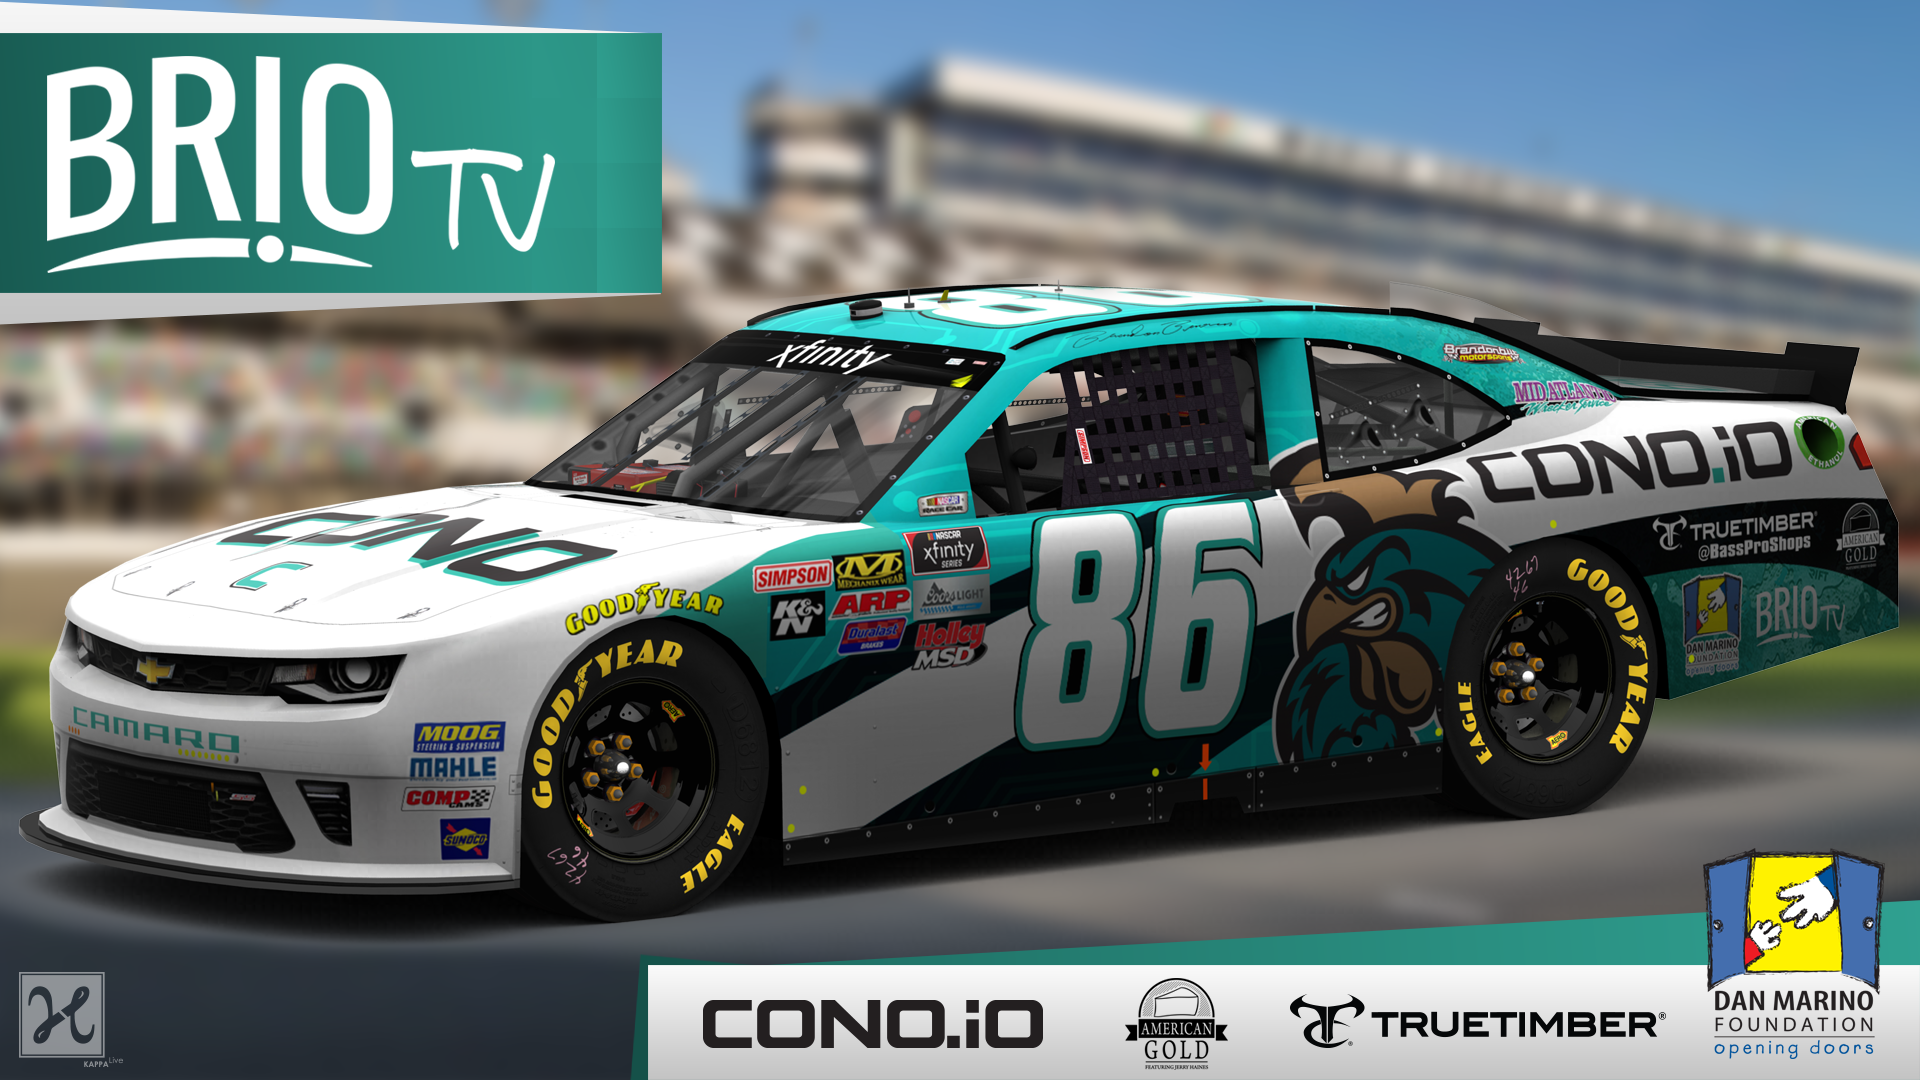 Brio TV Teams up with NASCAR Xfinity Series Brandon Brown #86 and NFL Hall of Fame Quarterback Dan Marino's Foundation